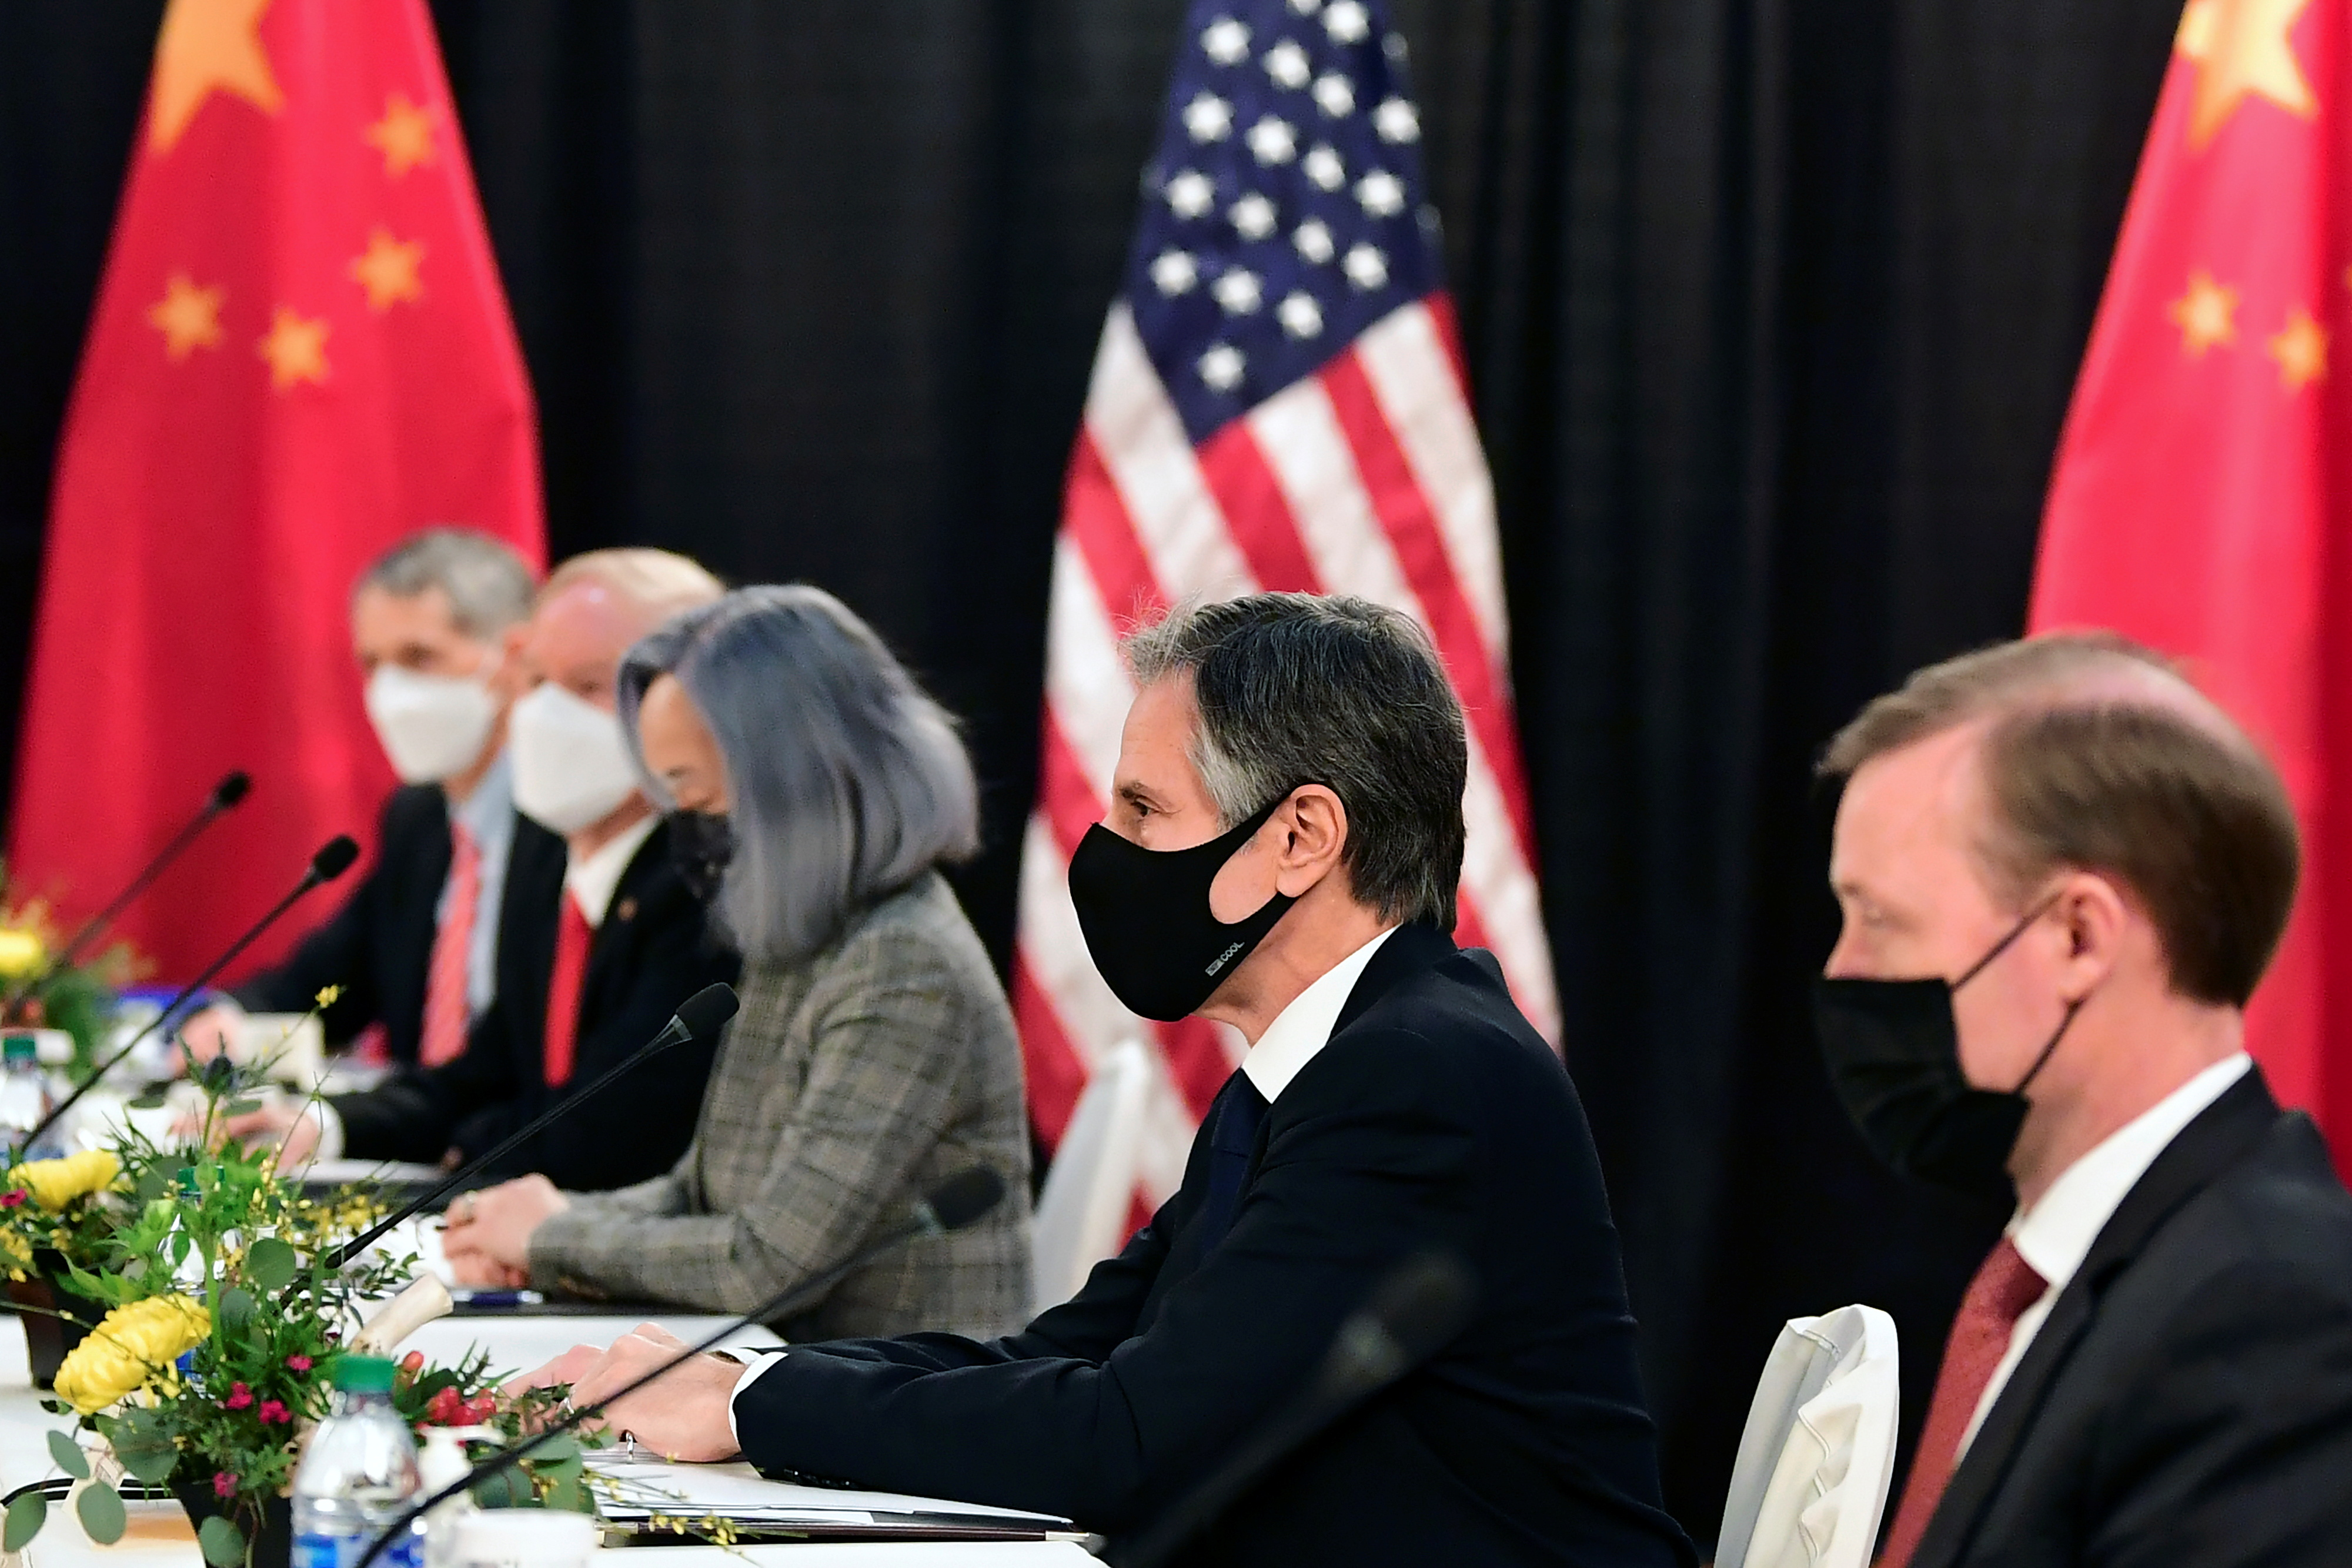 The U.S. delegation led by Secretary of State Antony Blinken (C) and flanked by National Security Advisor Jake Sullivan (R), face their Chinese counterparts at the opening session of U.S.-China talks at the Captain Cook Hotel in Anchorage, Alaska on March 18, 2021.  Frederic J. Brown/Pool via REUTERS